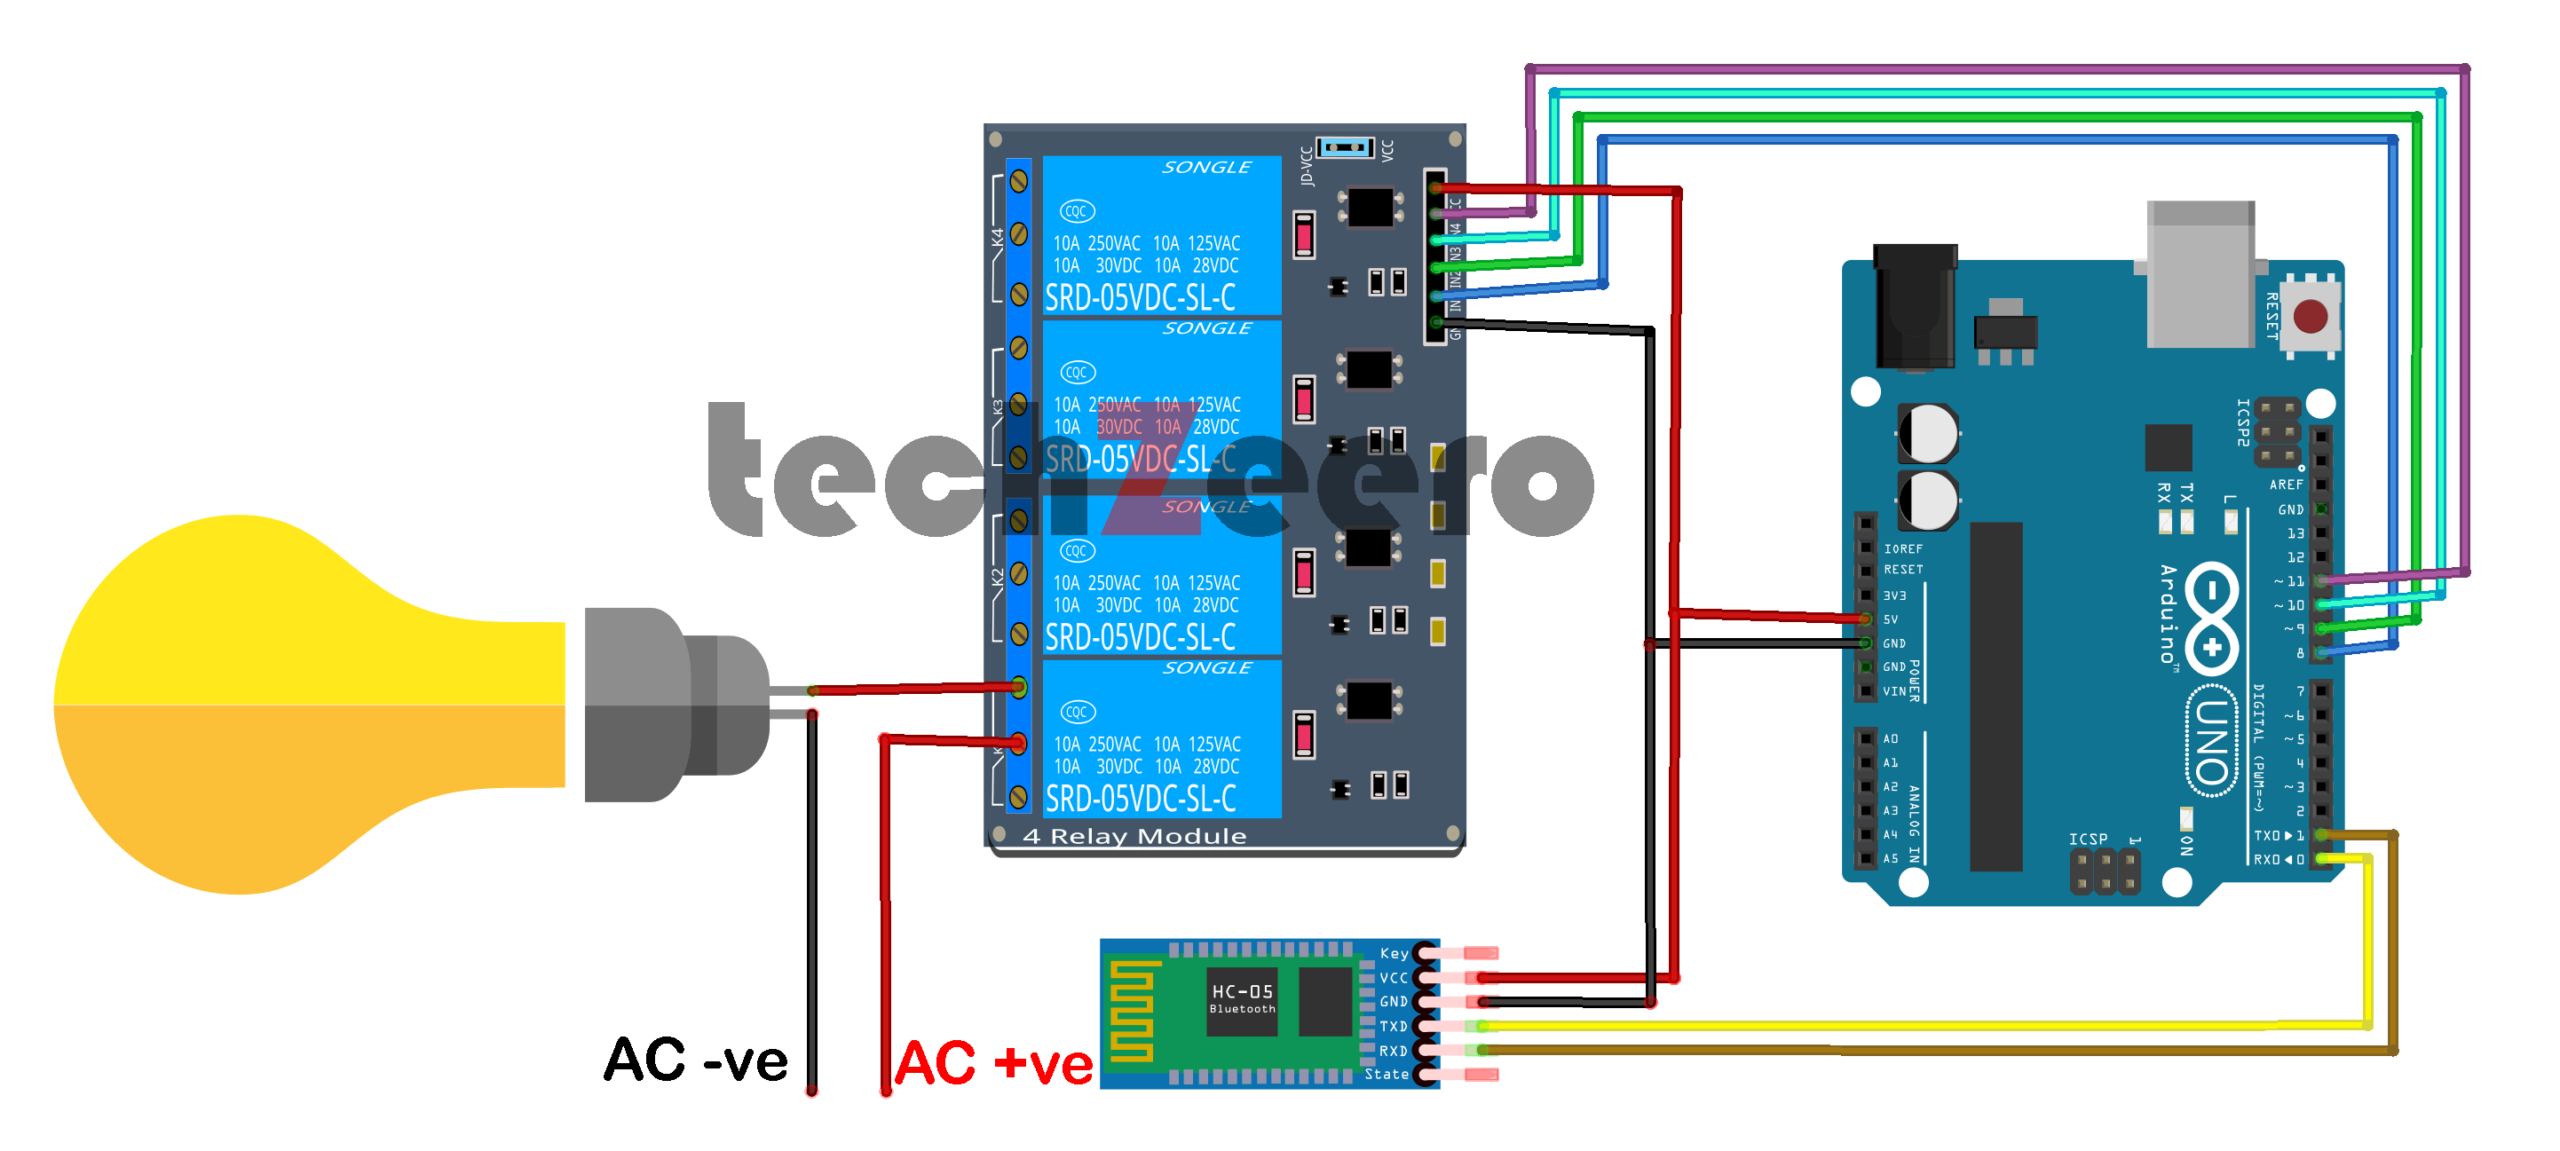 Circuit Diagram For Home Automation using Arduino